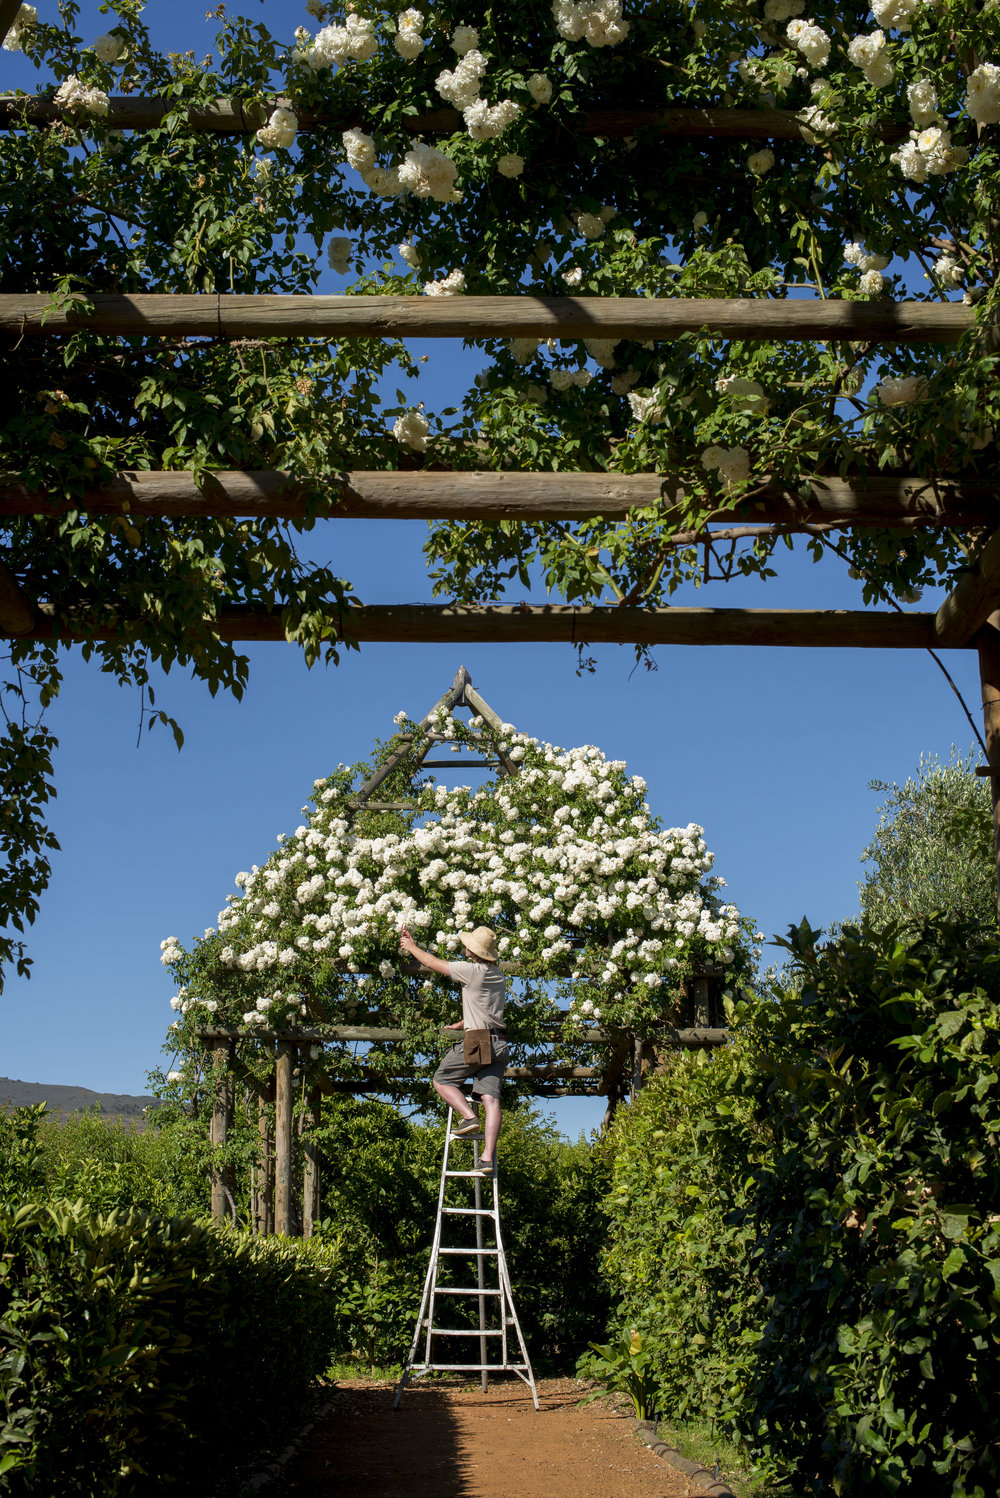 18.Rose arbour in citrus garden getting a trim.jpg